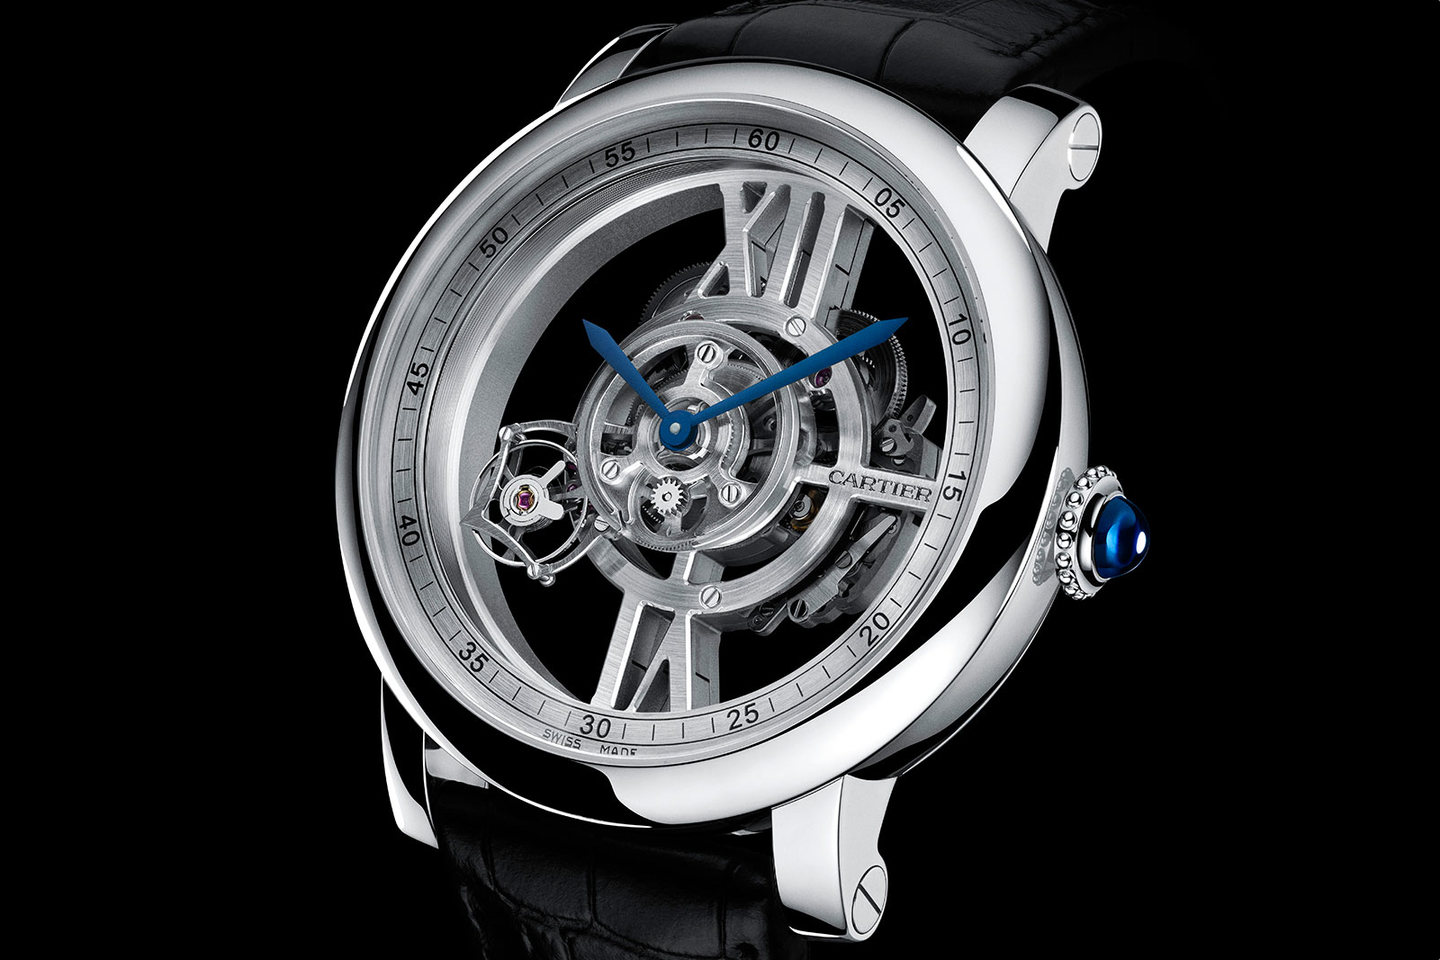 Cartier Rotonde de Cartier Astrotourbillon Skeleton watch replica